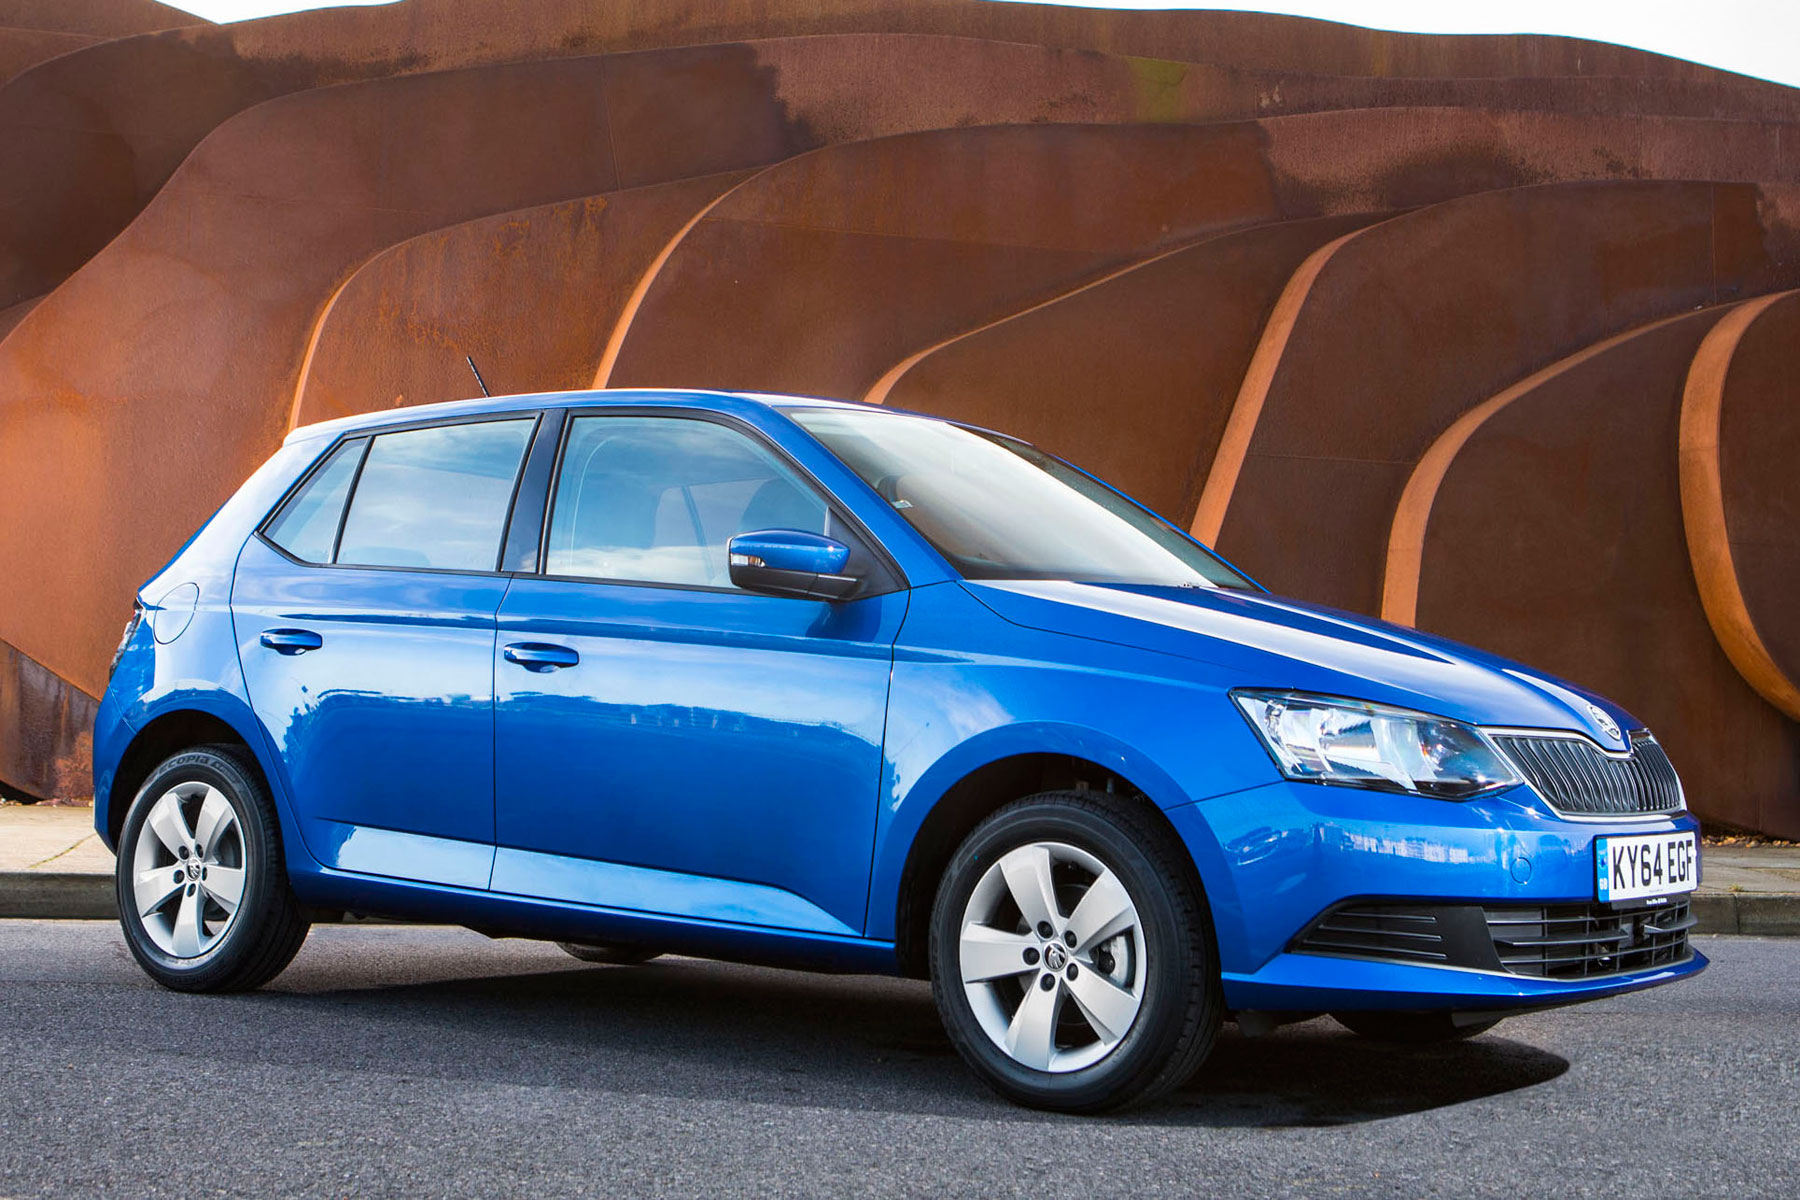 The 20 best first cars: Skoda Fabia